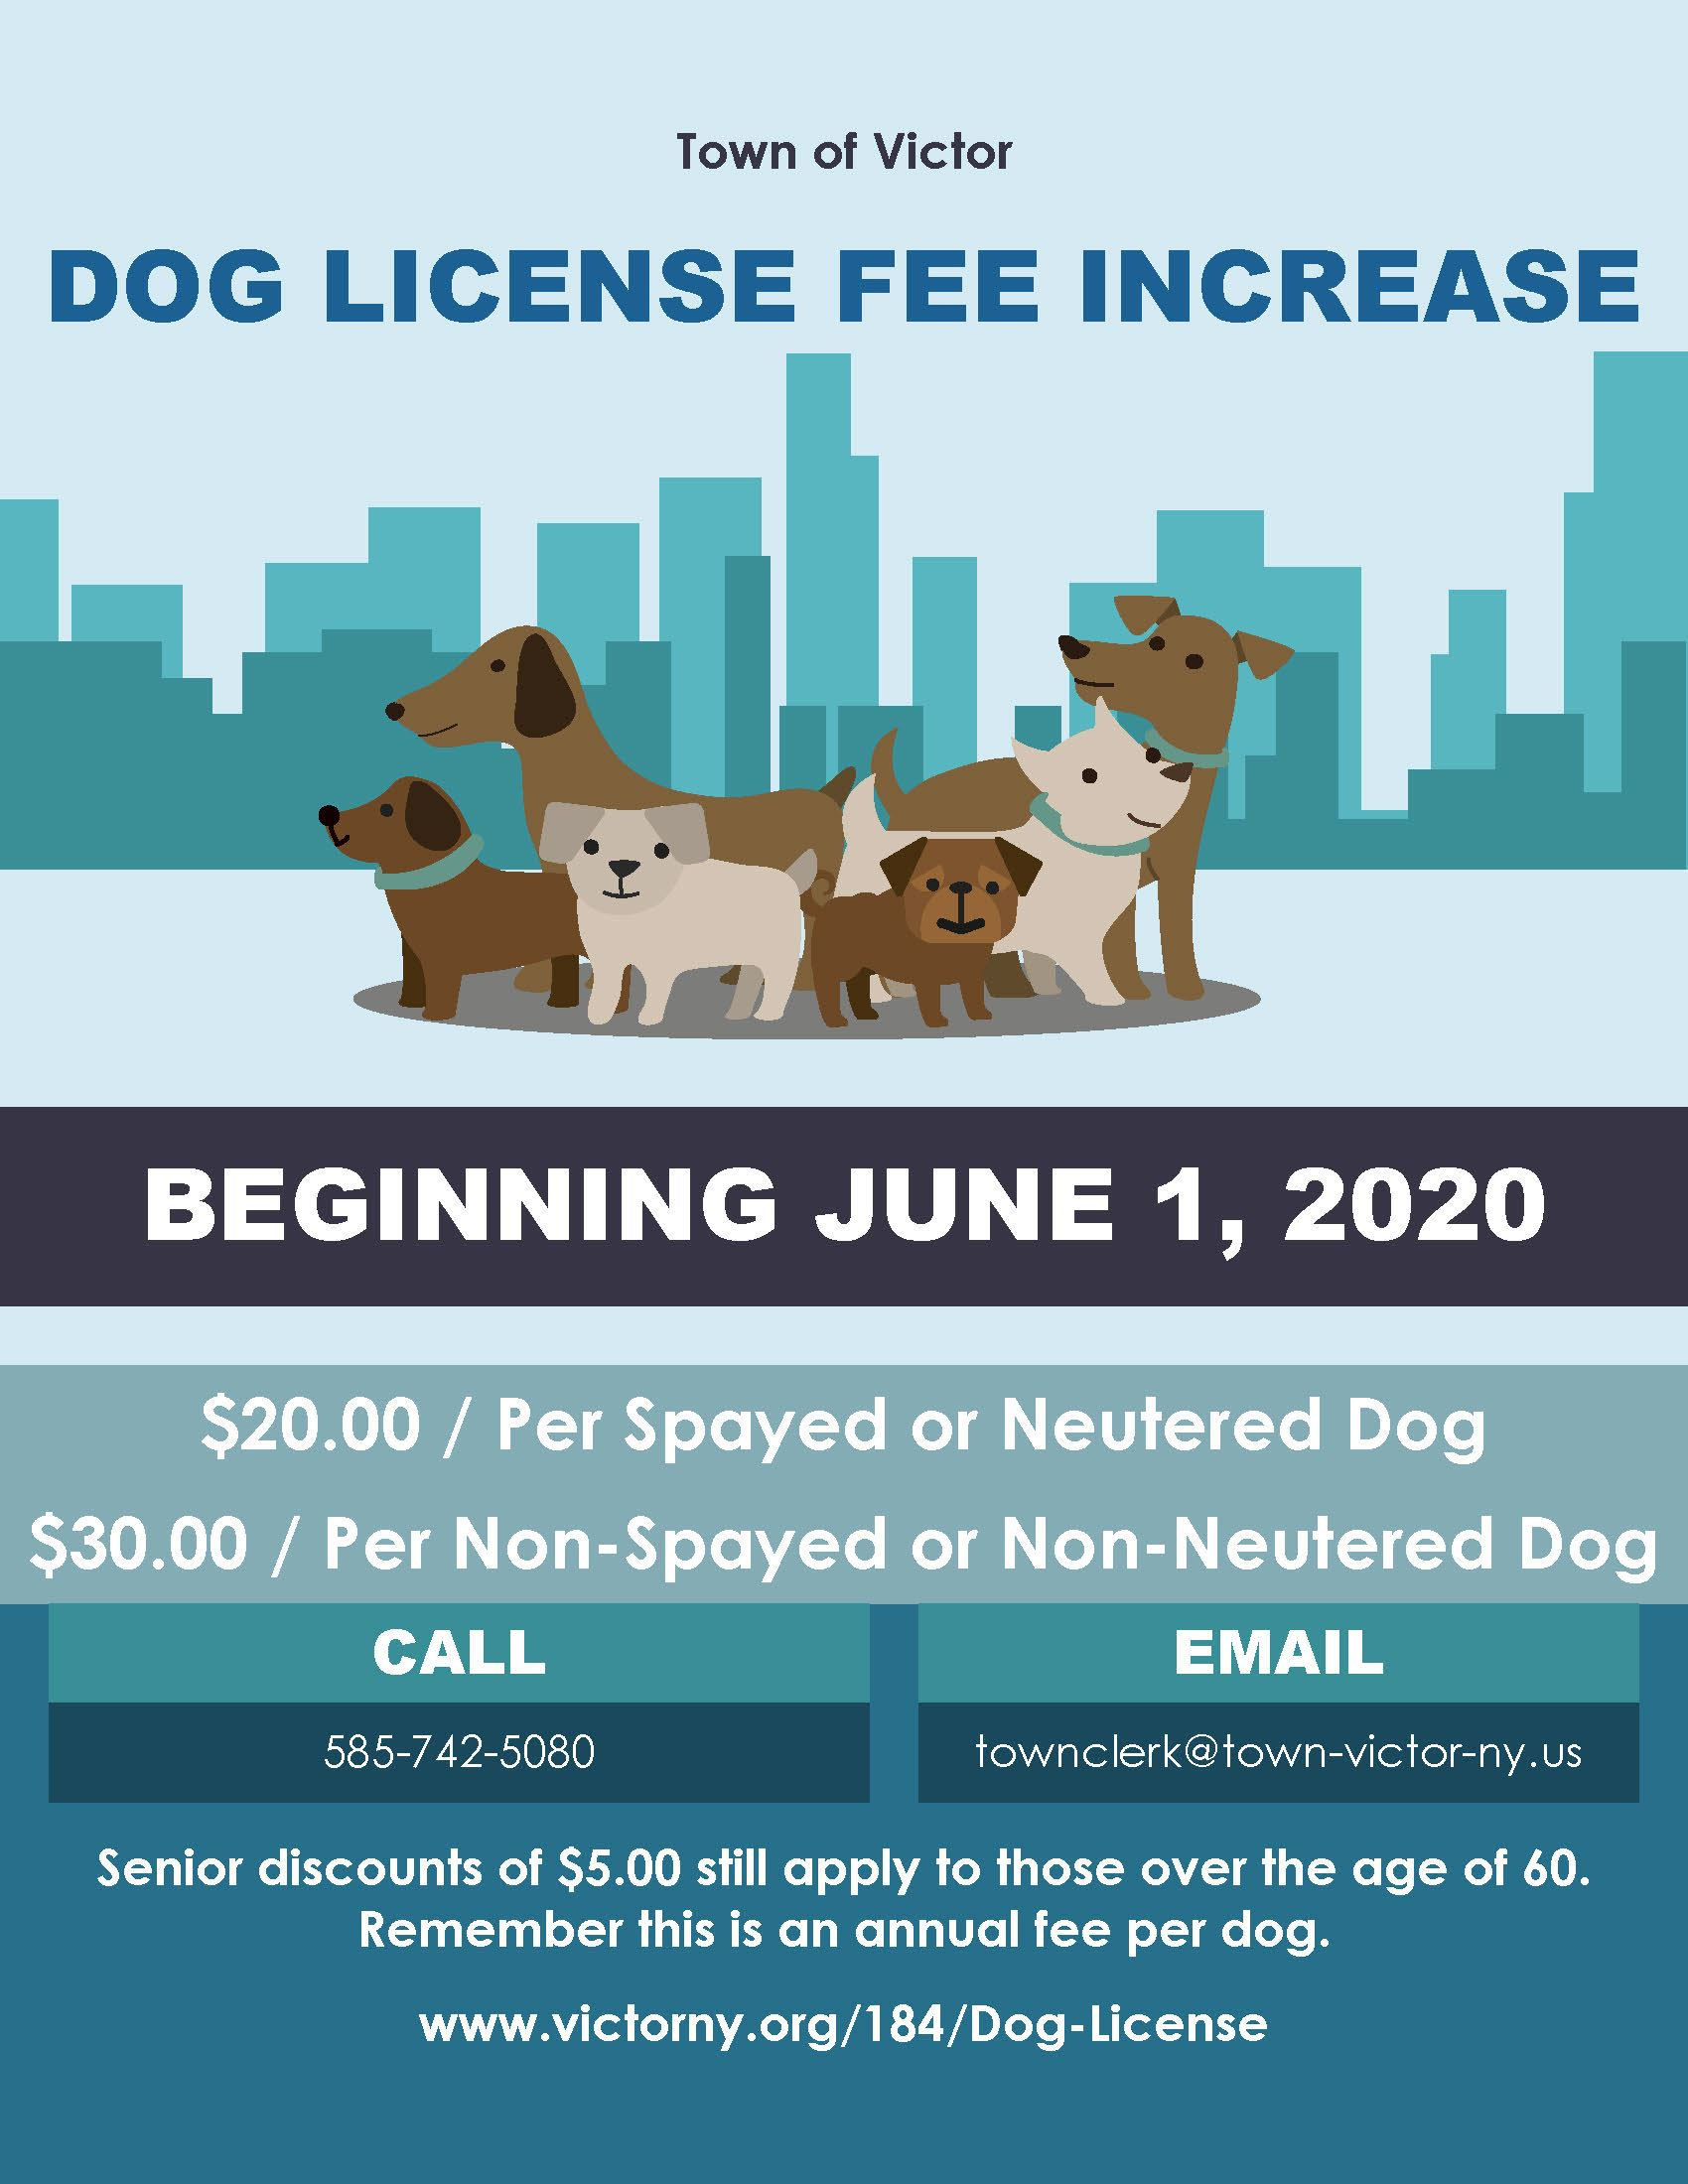 Dog License Fee Increase 06012020 blue background with cartoon dogs